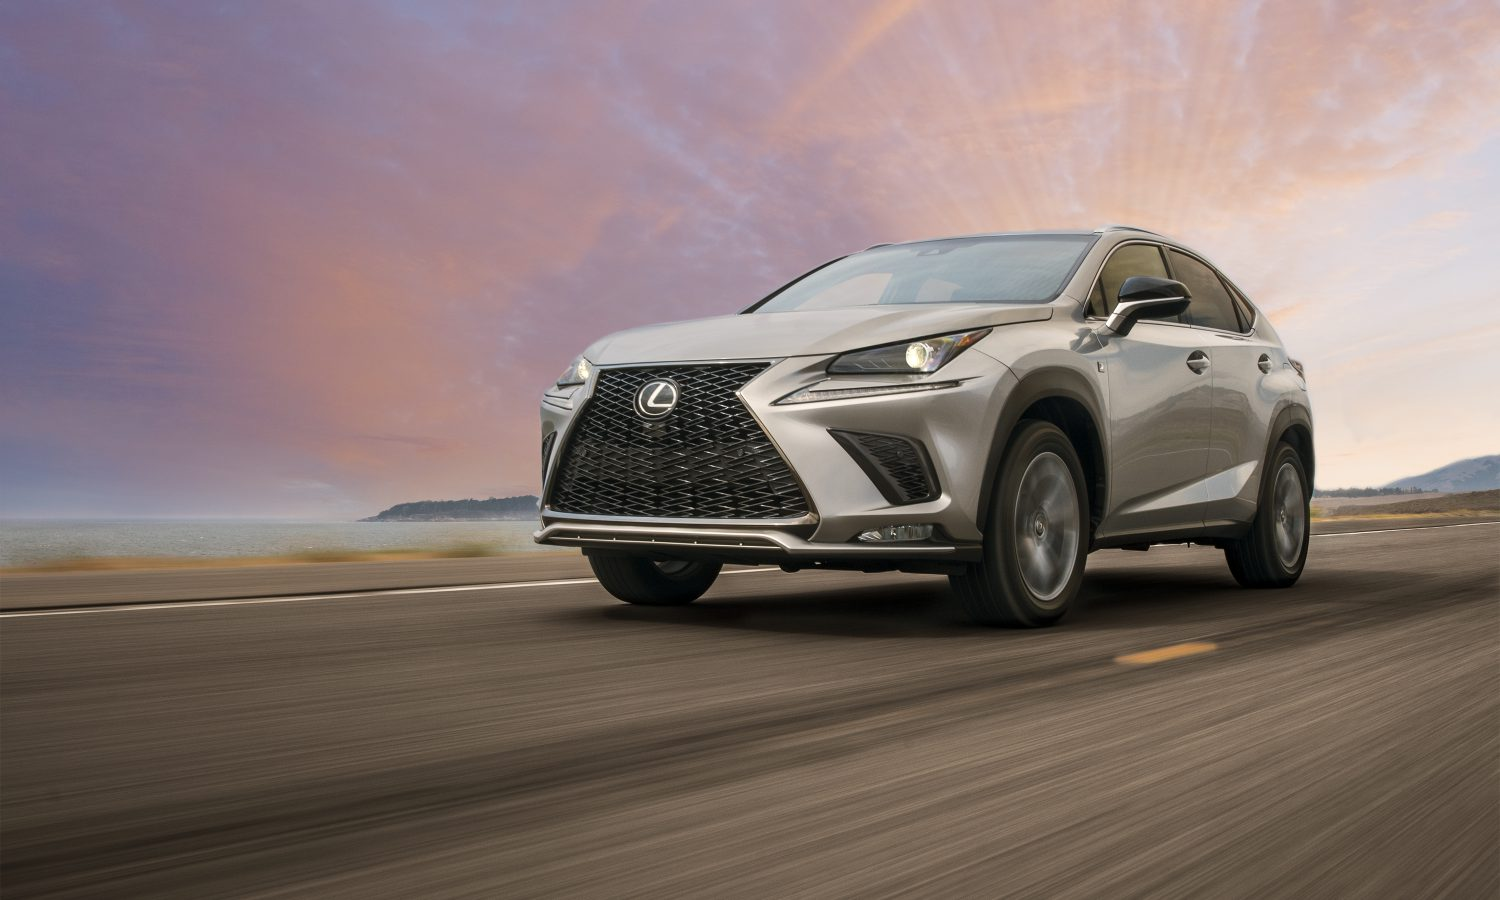 2018 Lexus NX 300: A Refresh with Added Conveniences - Lexus USA